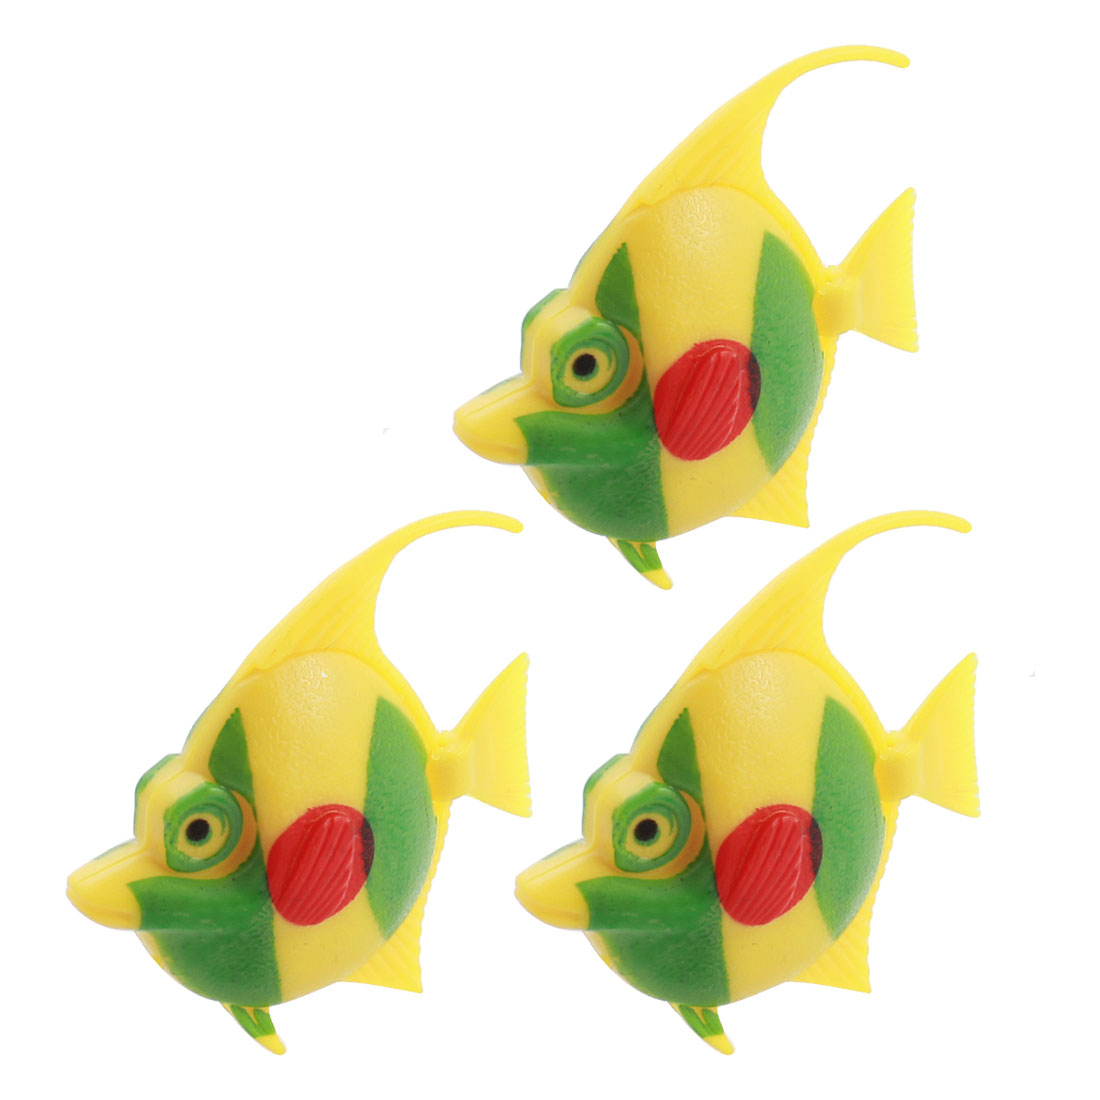 3pcs Movable Tail Plastic Tropical Fish Decoration Green Yellow for Aquarium